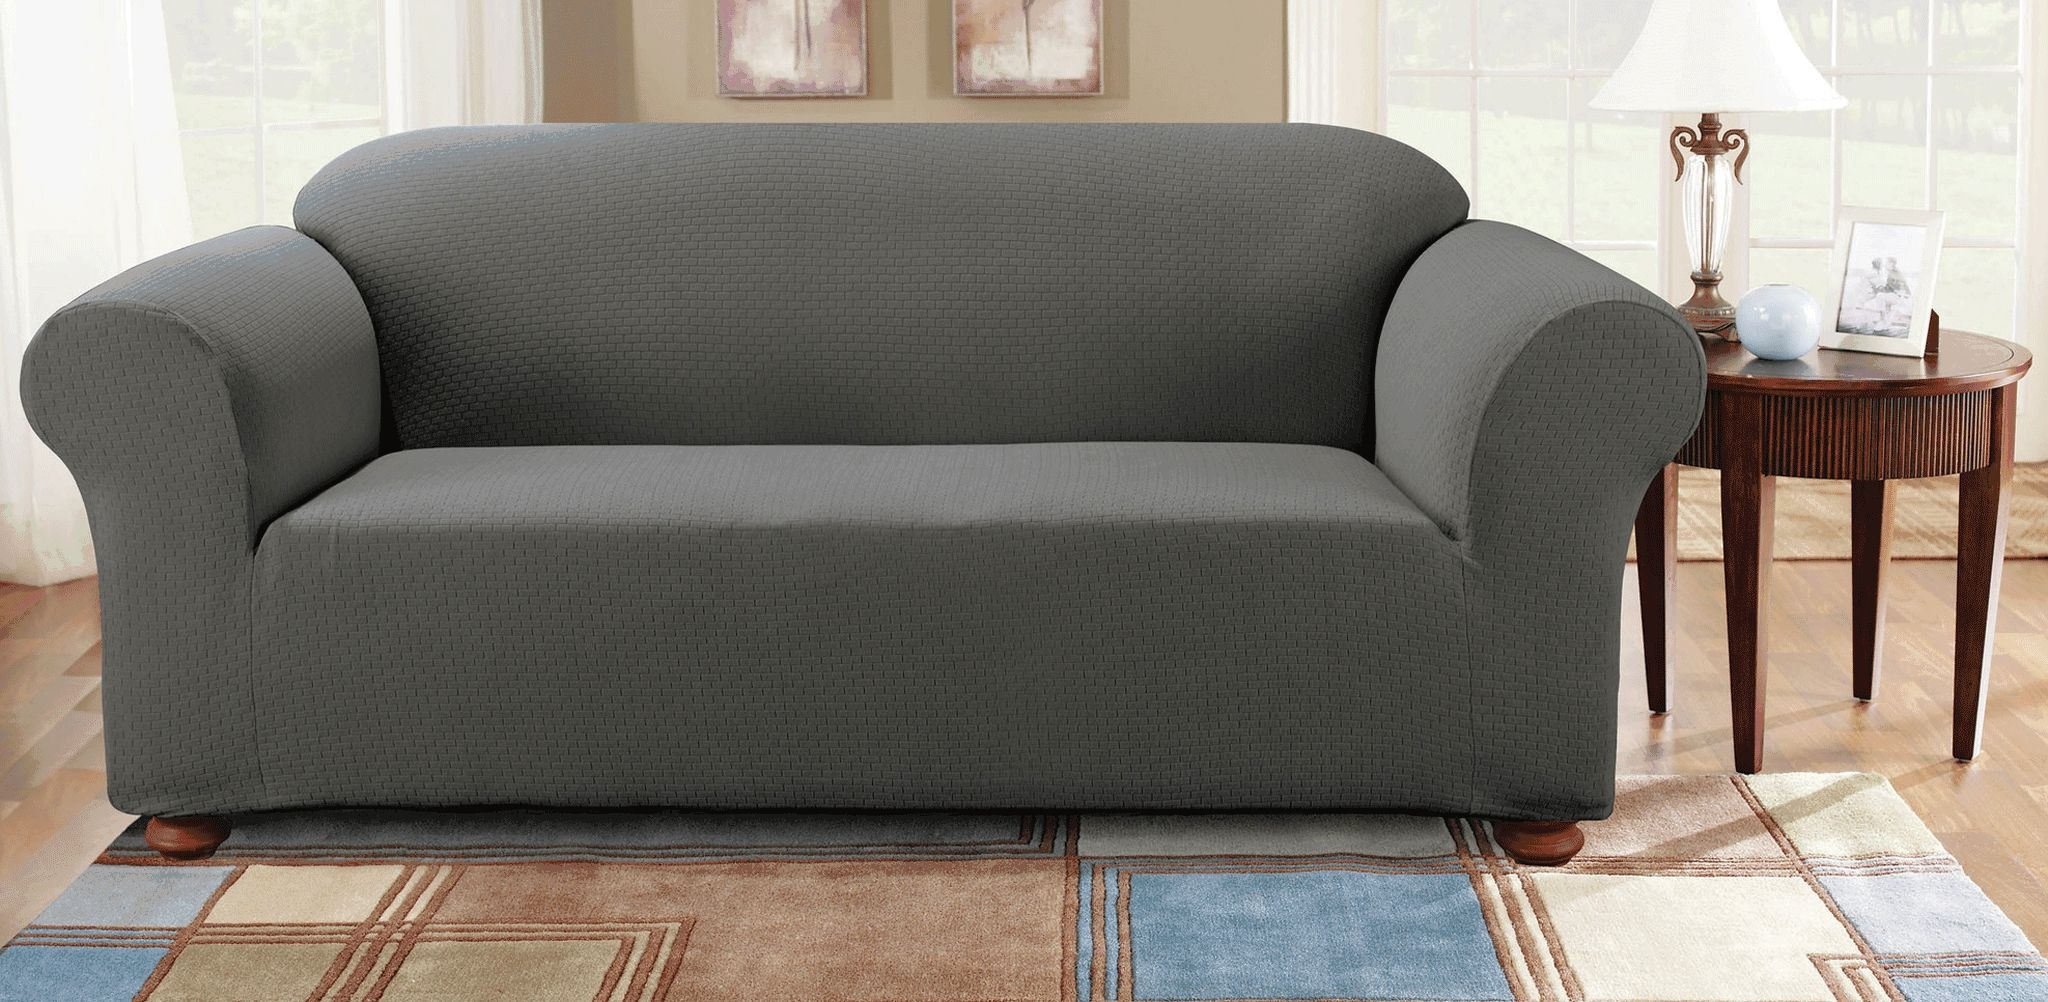 Couch Covers Sectional Couch Covers Big Lots Small Sectional Sofa Covers